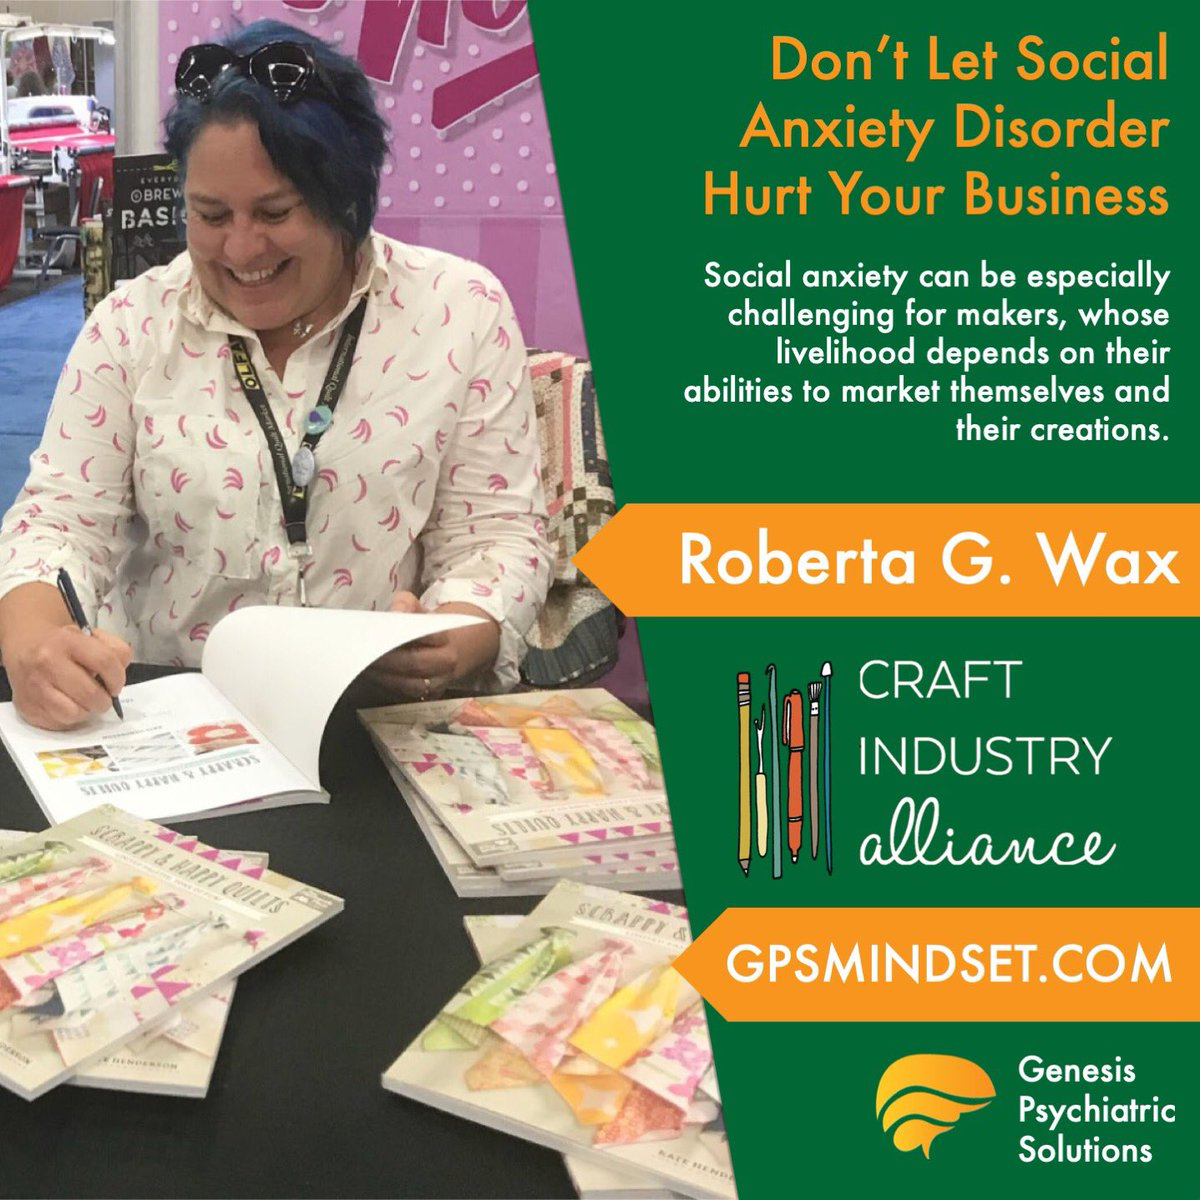 Social anxiety can be especially challenging for makers, whose livelihood depends on their abilities to market themselves and their creations.  https://craftindustryalliance.org/dont-let-social-anxiety-hurt-your-business/ …  #mindset #attitude #mentalhealth  #gpsmindset #socialanxietydisorder #socialanxiety #socialanxietyawareness